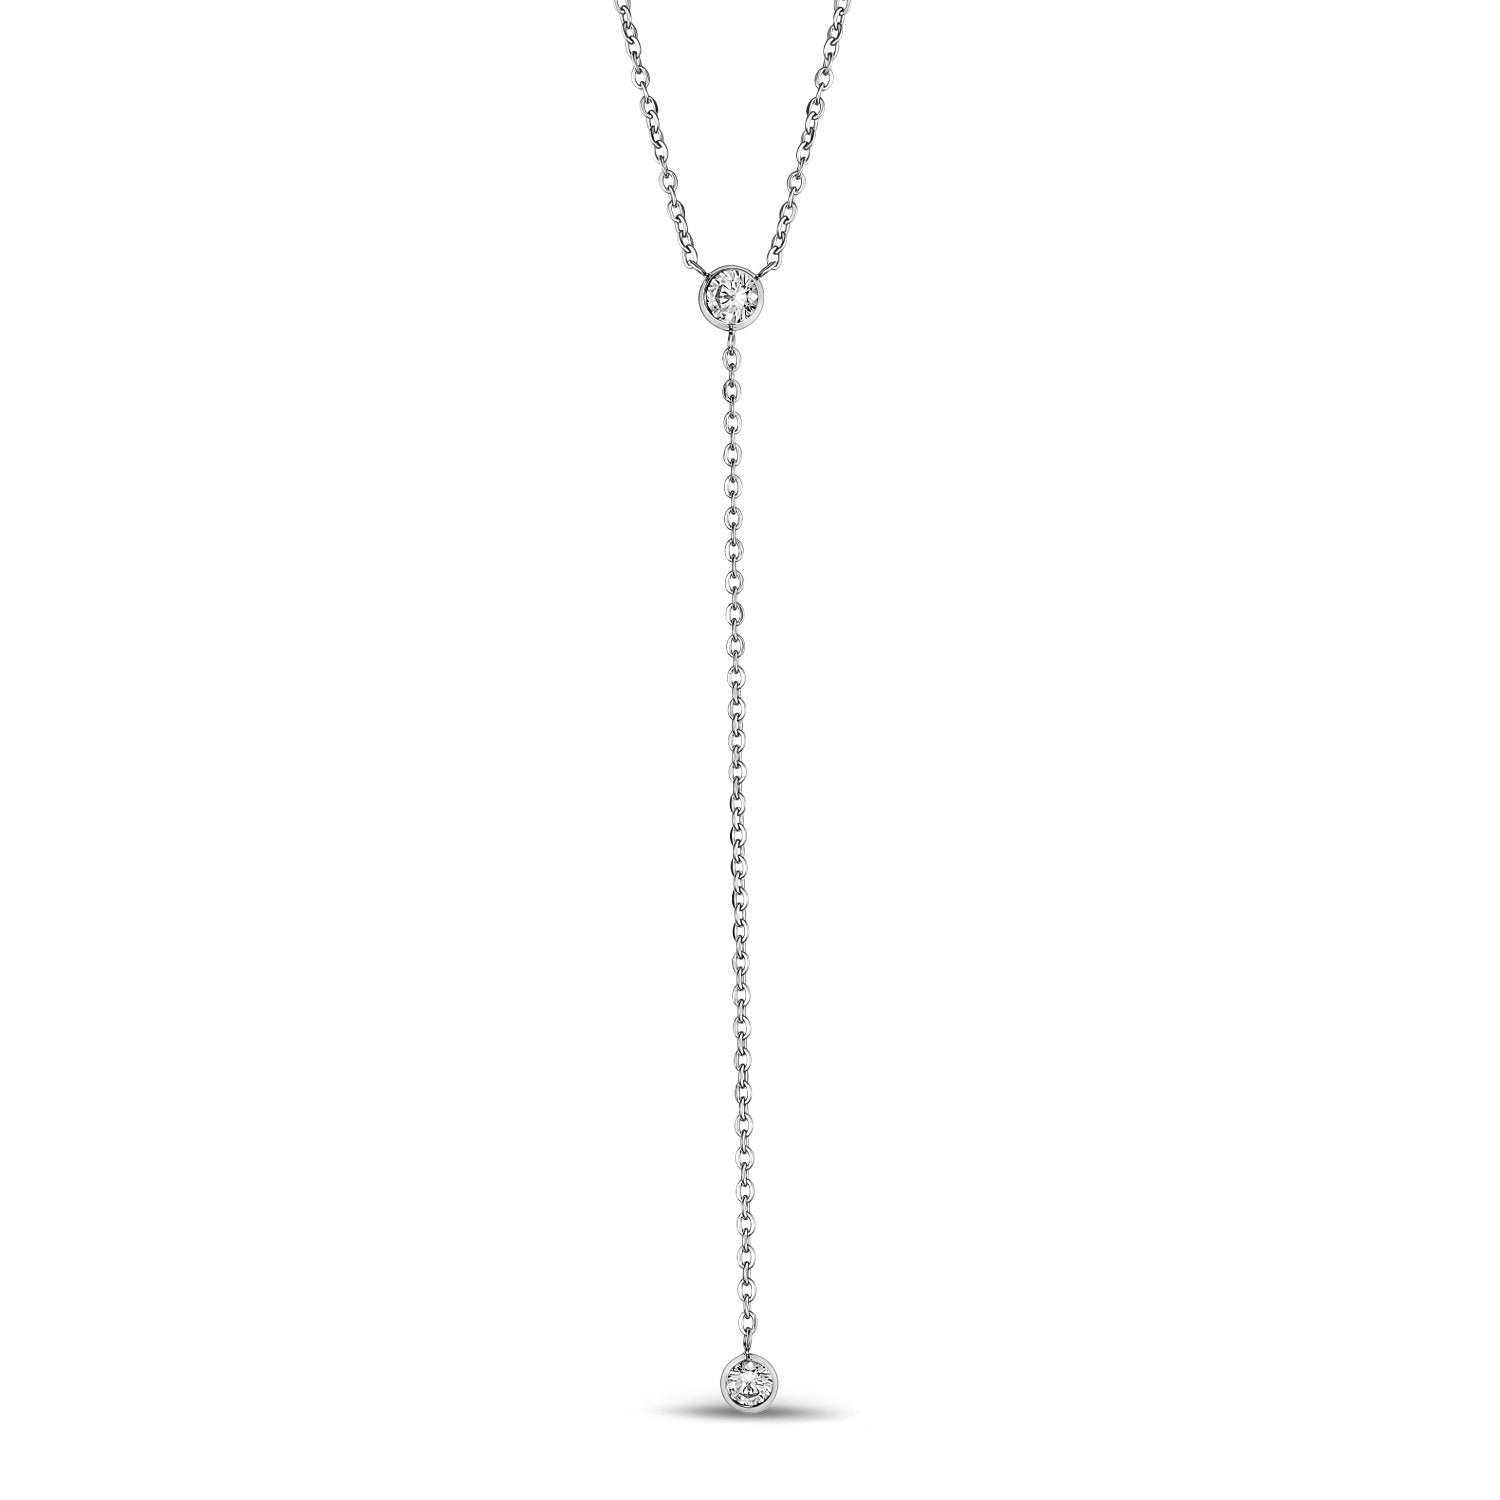 Women's Necklaces - Cubic Zircon Dangling Stainless Steel Necklace